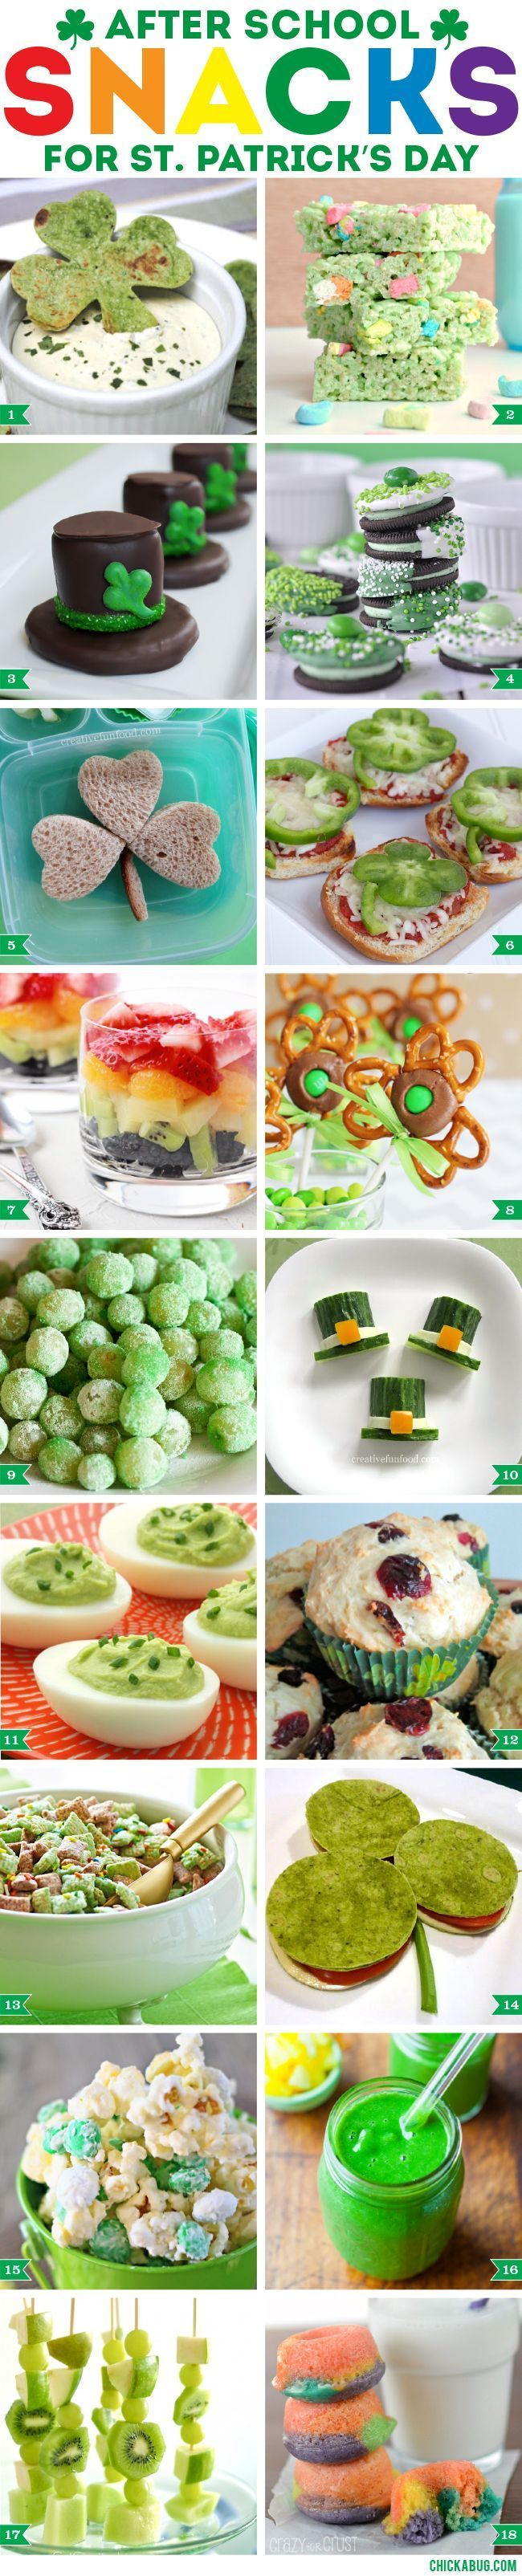 After school snacks for St. Patrick's Day